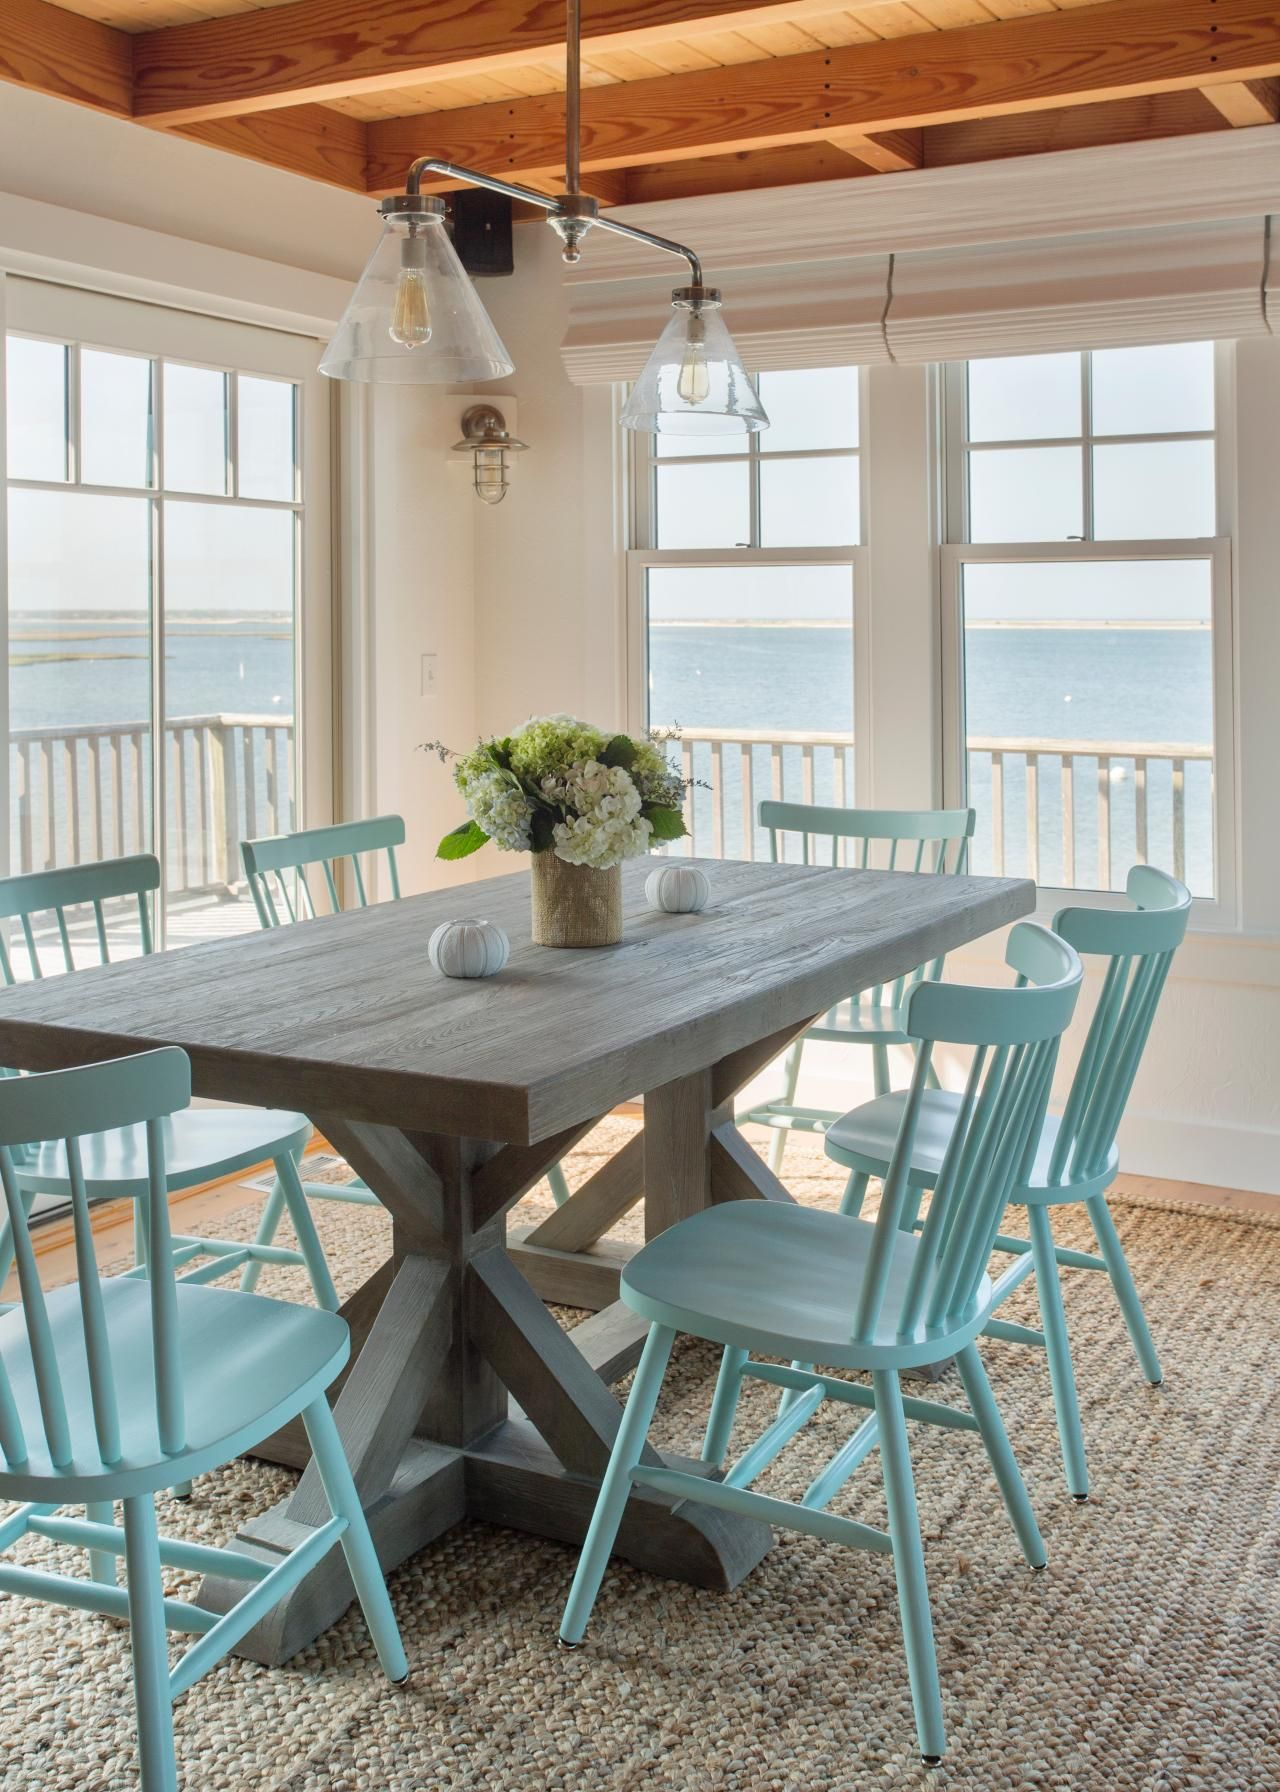 10 Furniture Pieces That Never Go Out Of Style Coastal Dining Room Beach House Interior Nautical Kitchen Decor